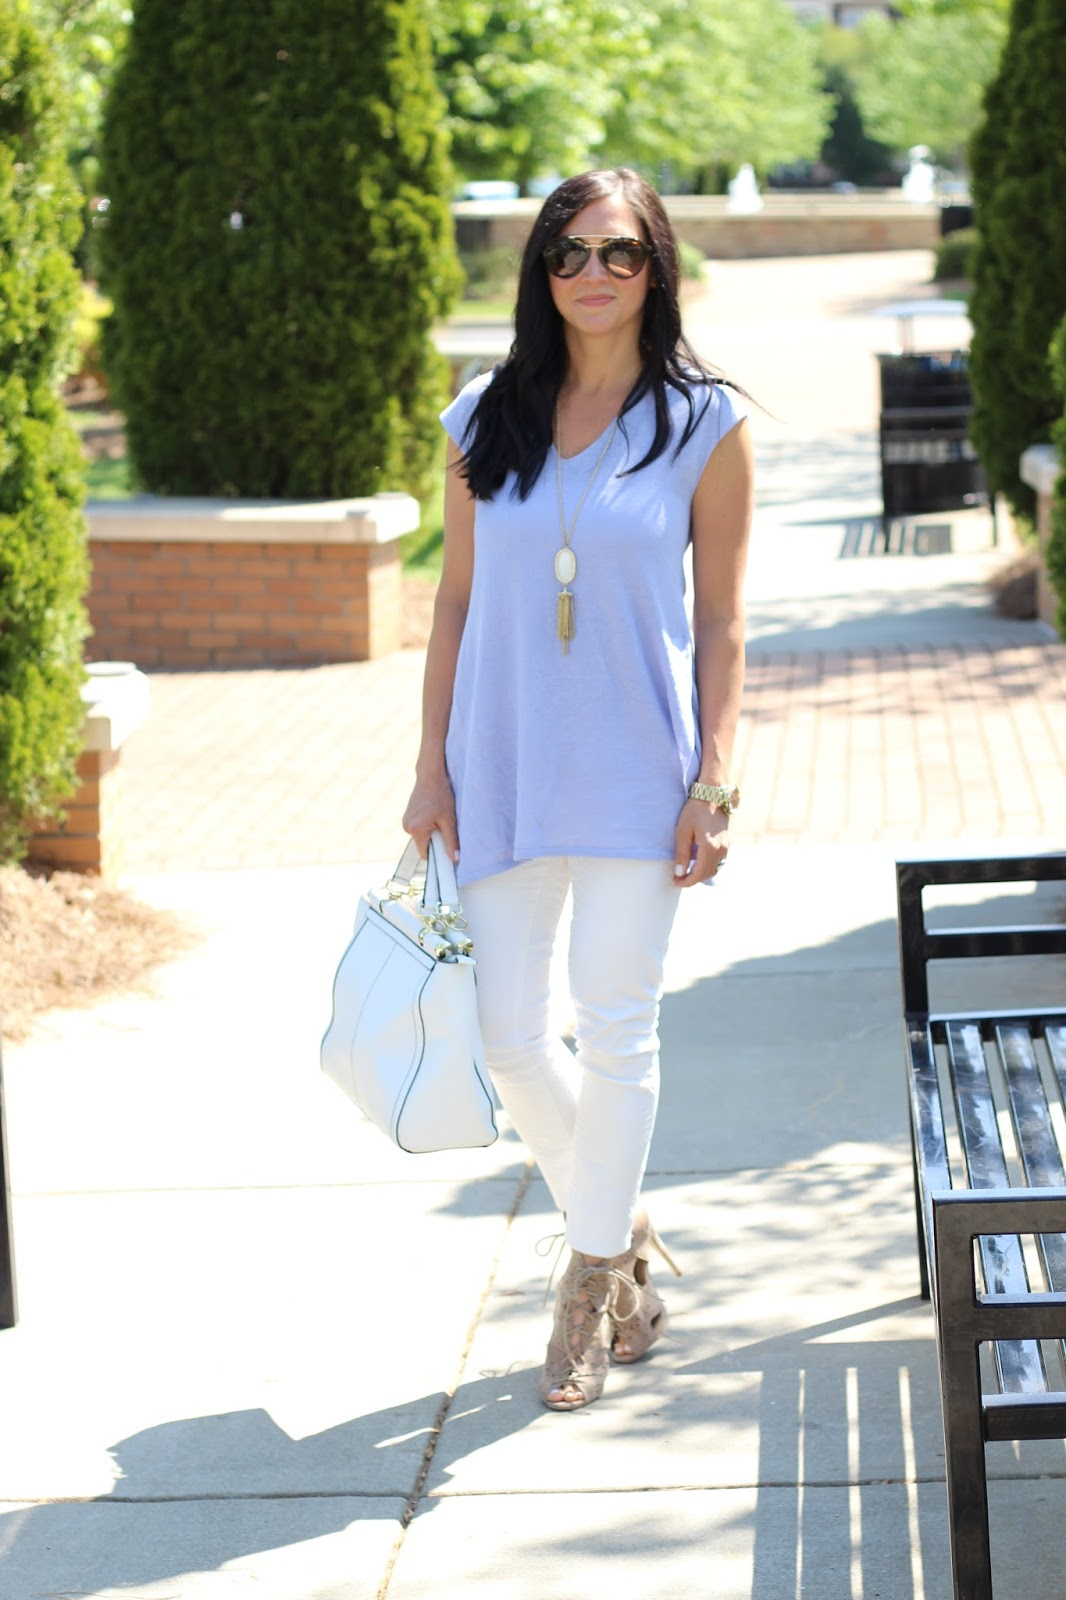 J. Jill Spring Style, White Skinny, lace up bootie, lavender tunic